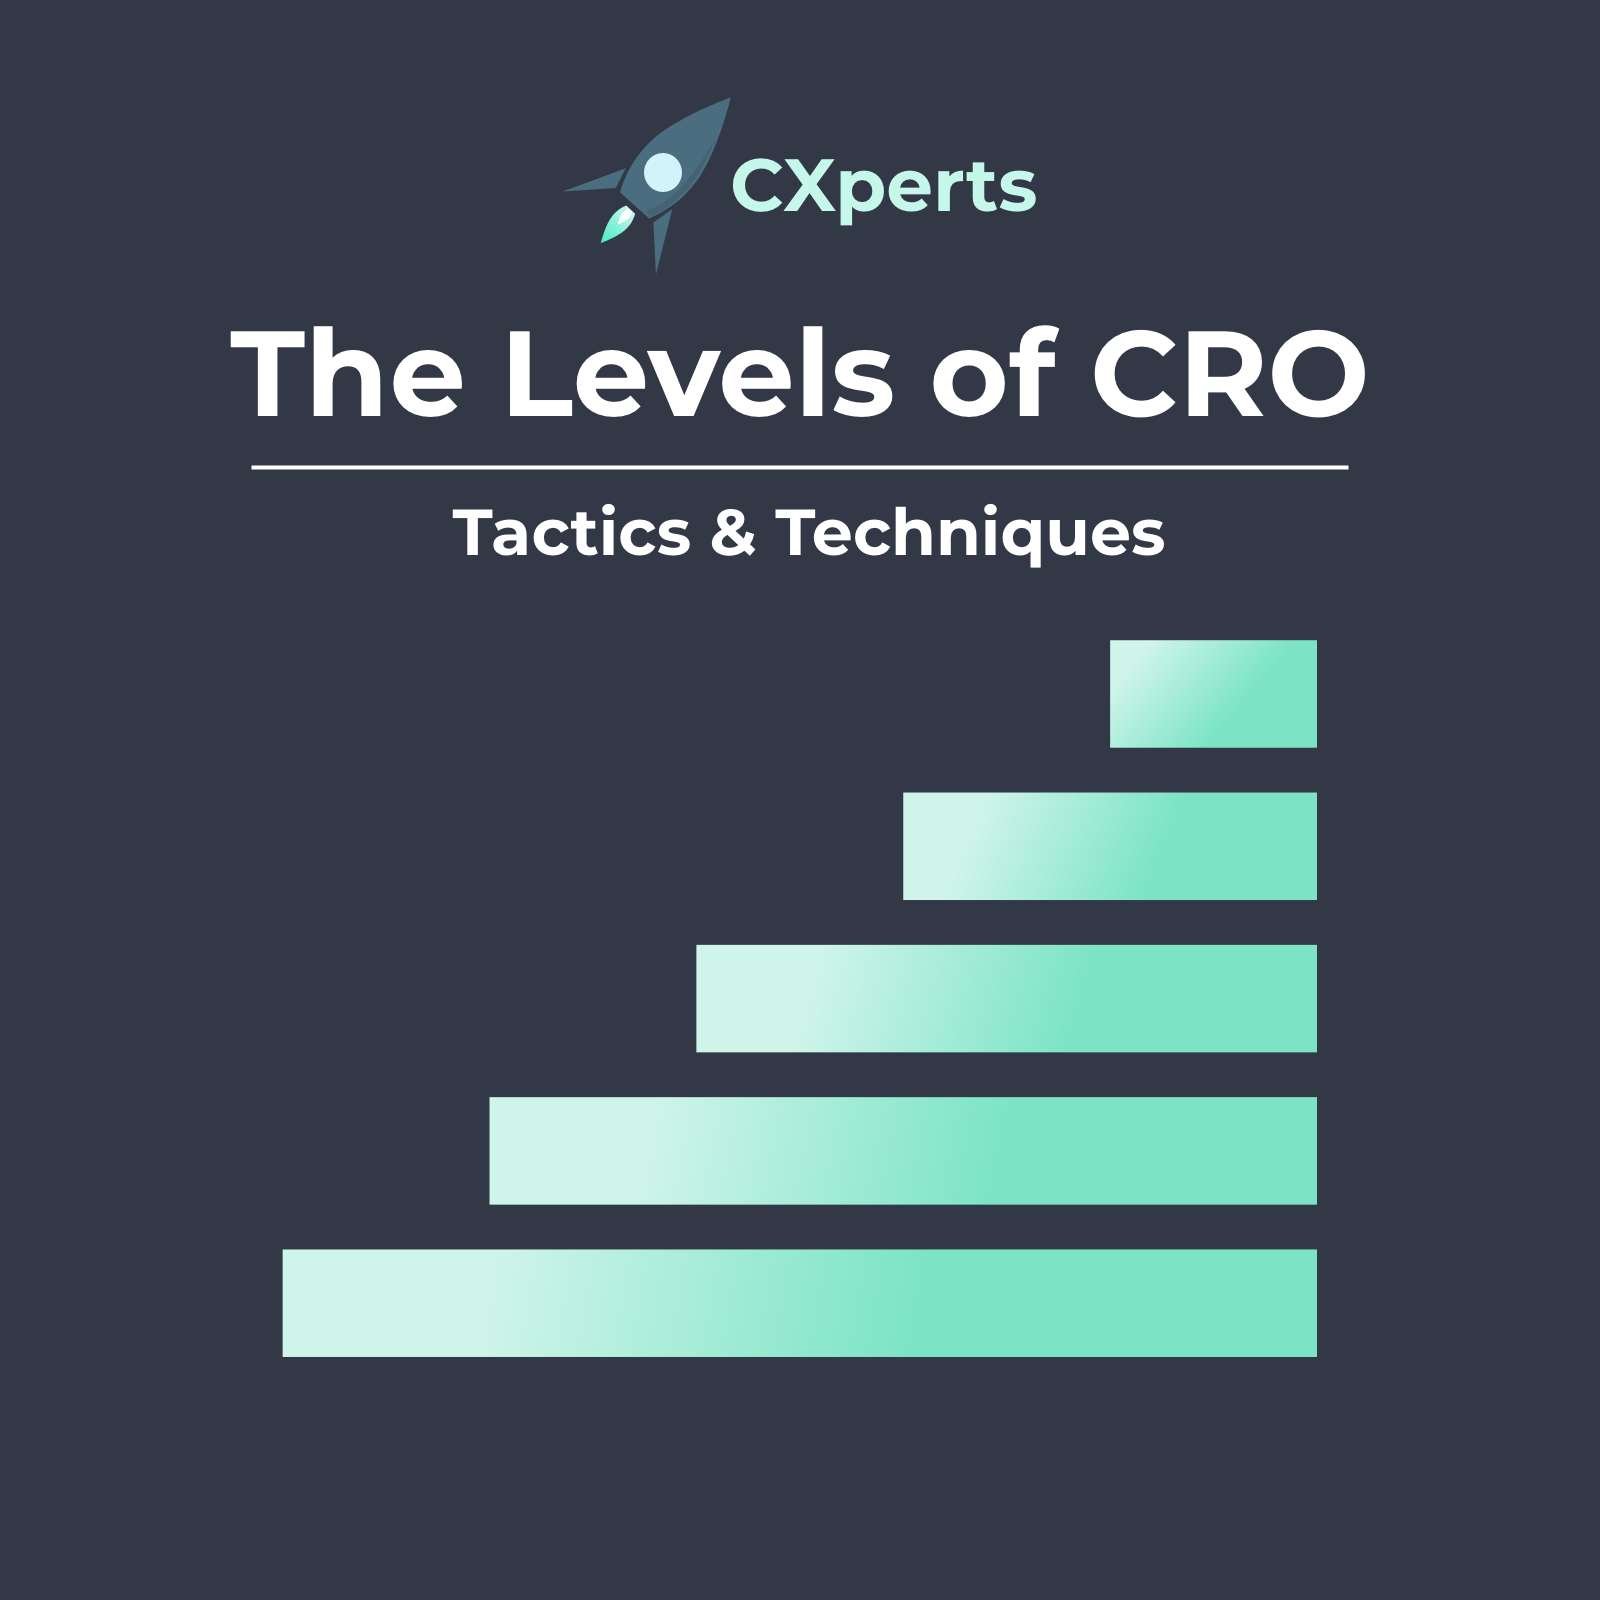 The 5 Levels of CRO - Digital Experimentation Maturity Model